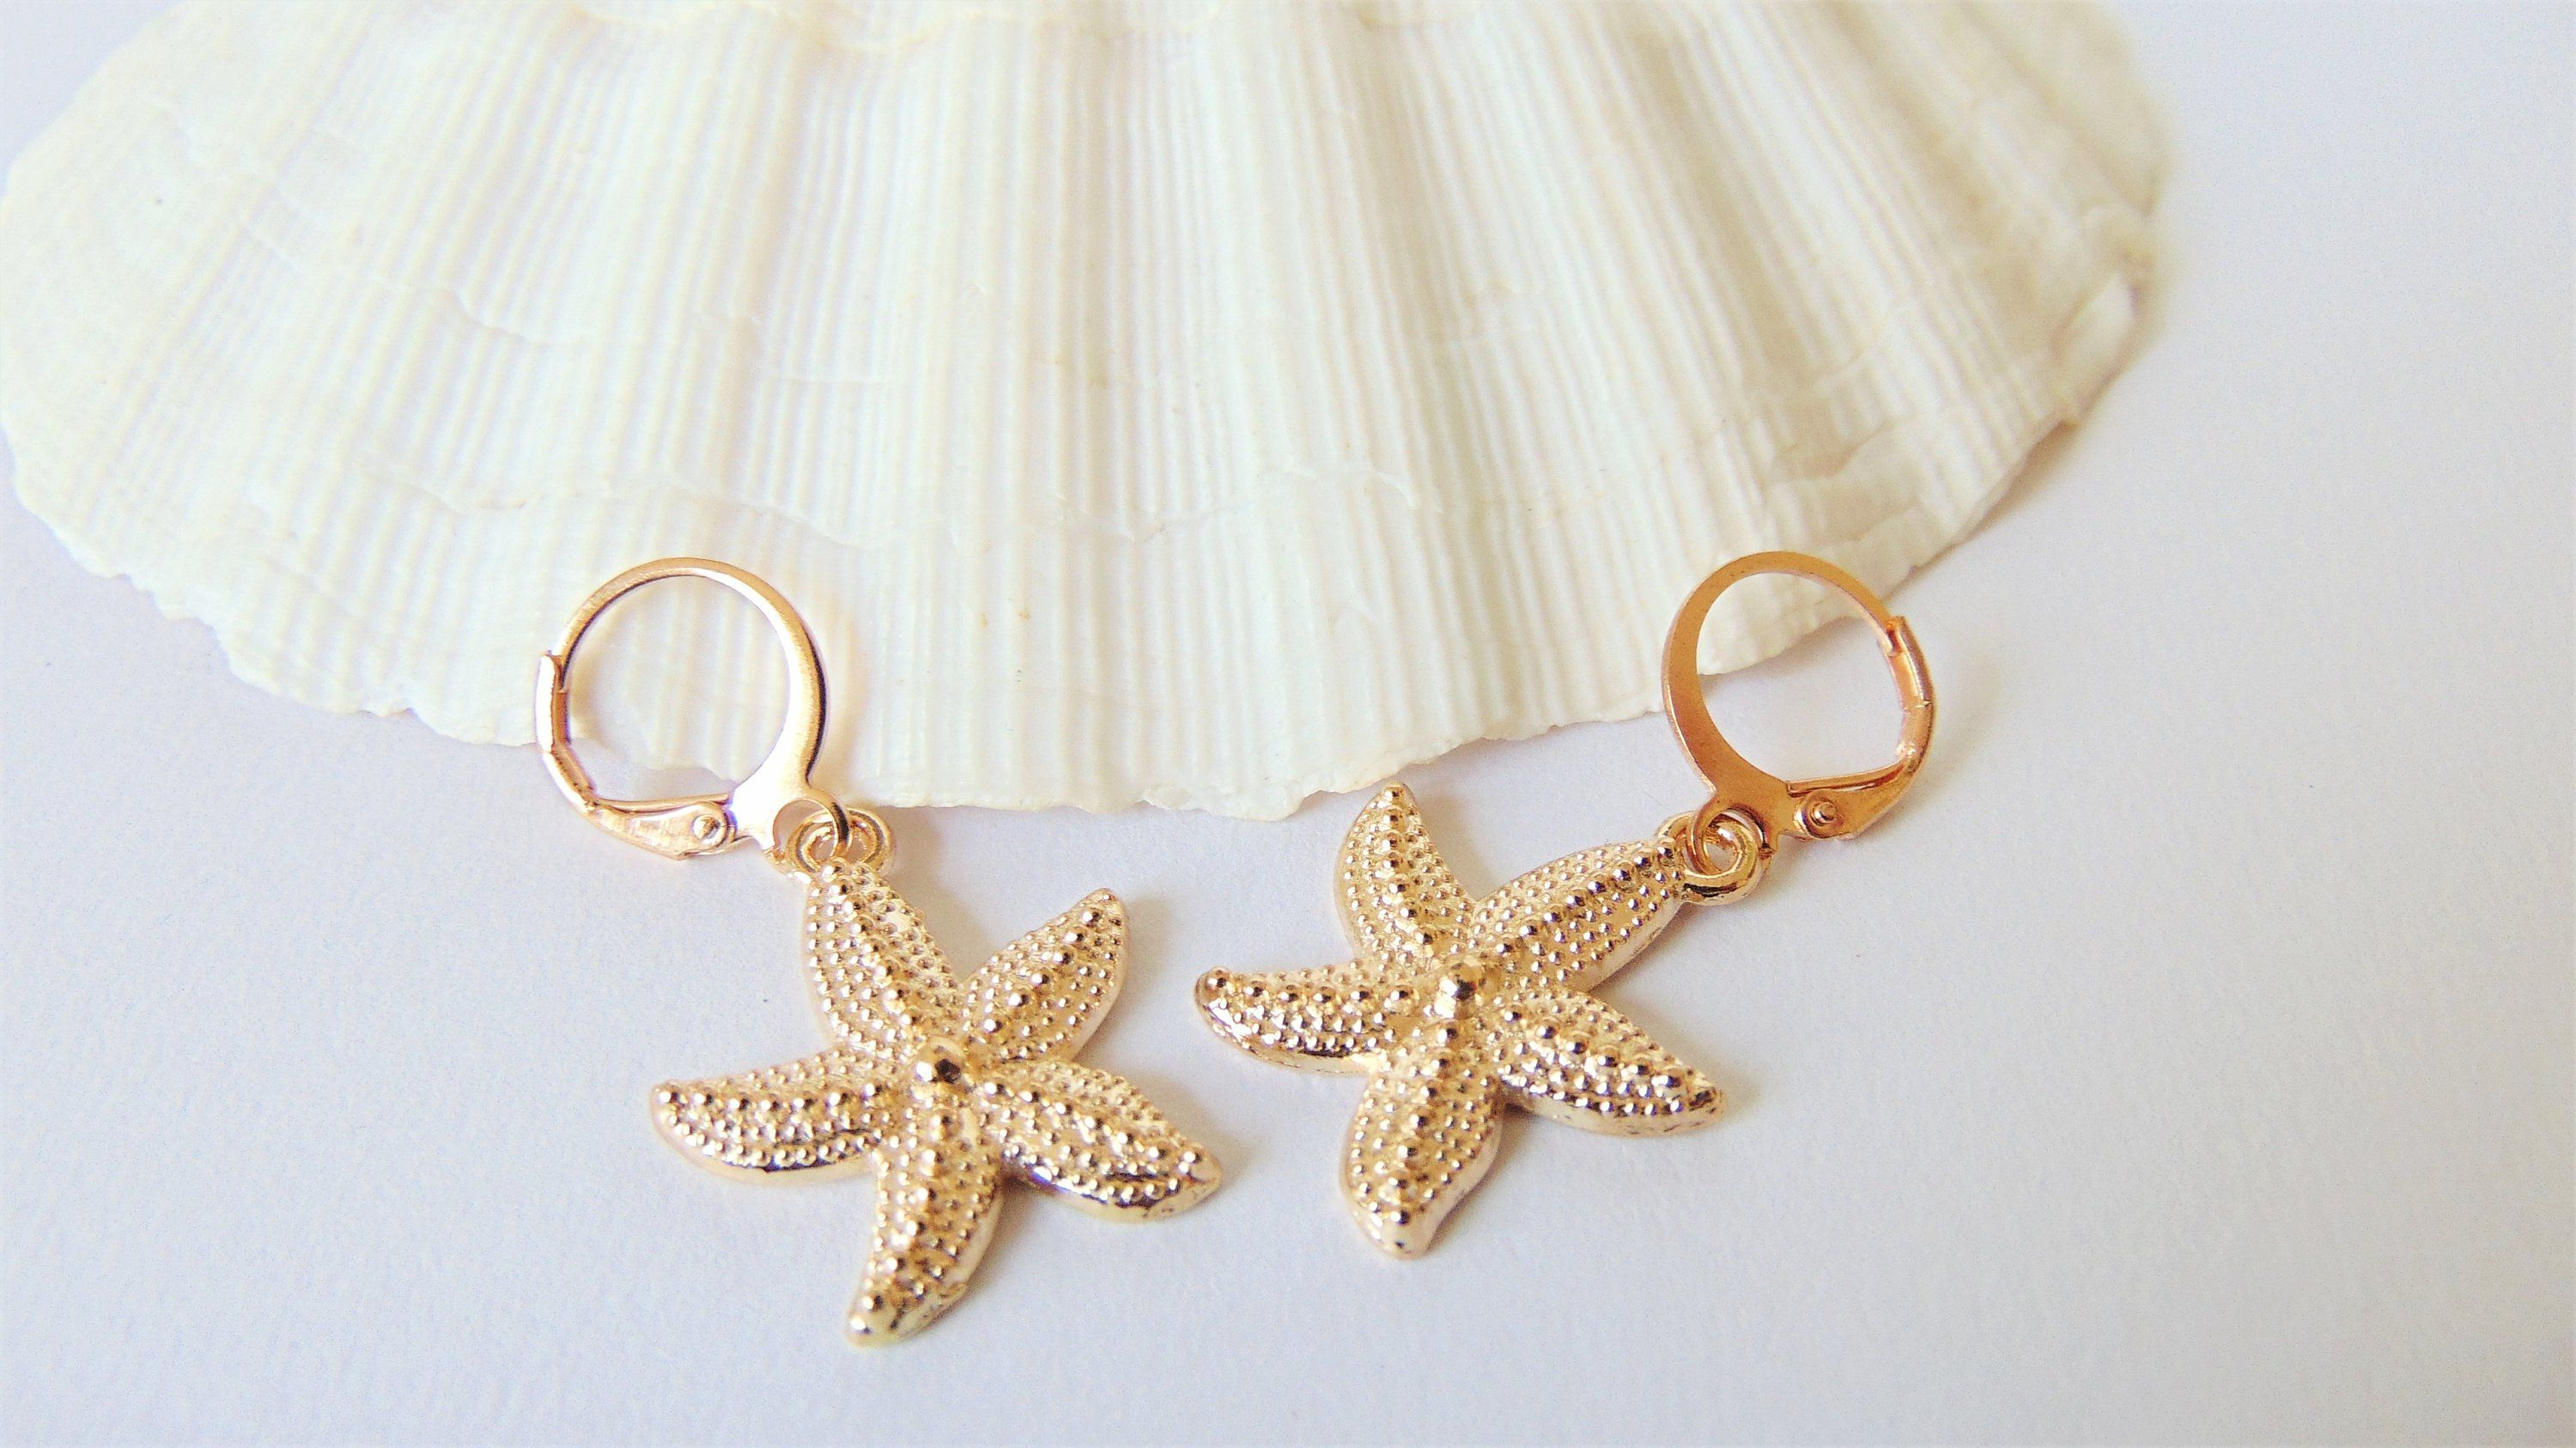 a41b67c36 Starfish Earrings - Rose Gold sea creature charms on round lever back  hoops, Modern Mermaid